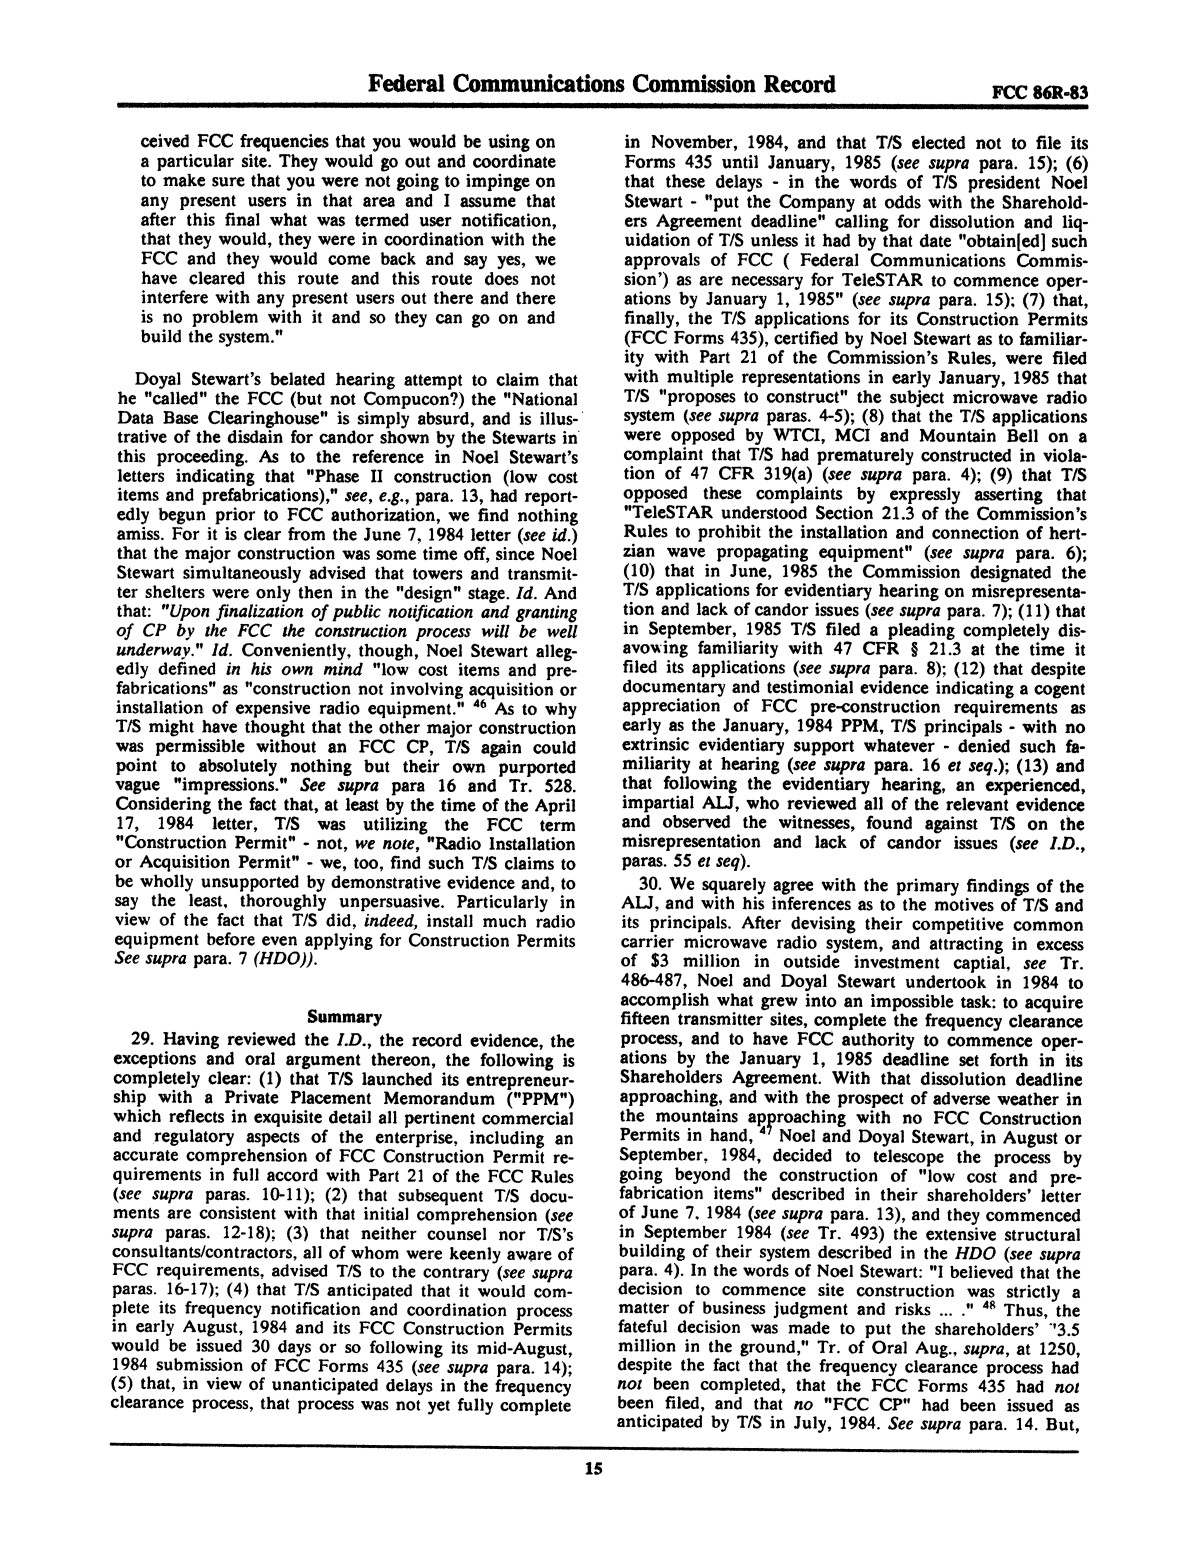 FCC Record, Volume 2, No. 1, Pages 1 to 409, January 5 - January 16, 1987                                                                                                      15